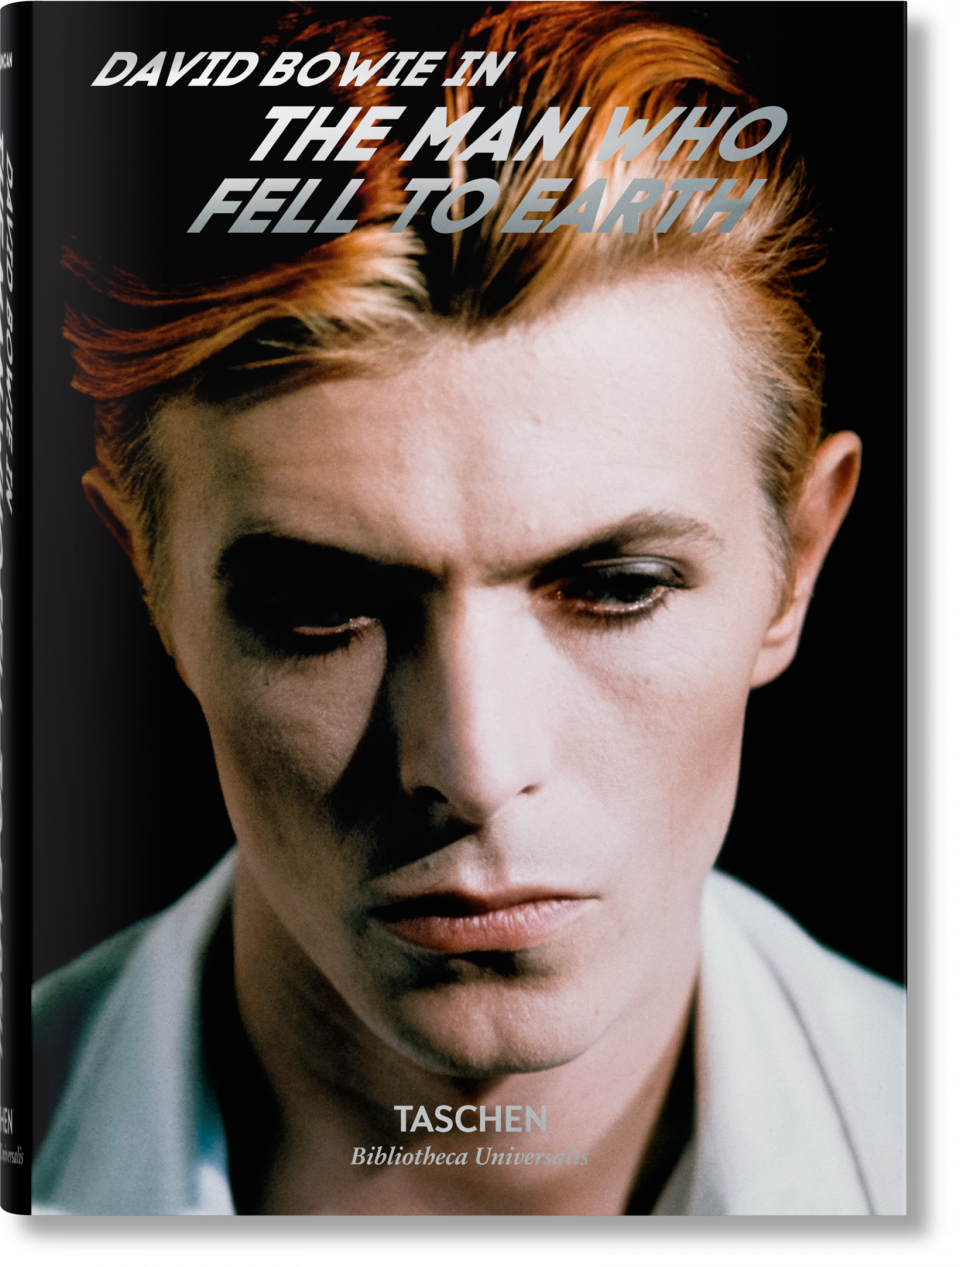 David Bowie. The Man Who Fell to Earth - Duncan Paul